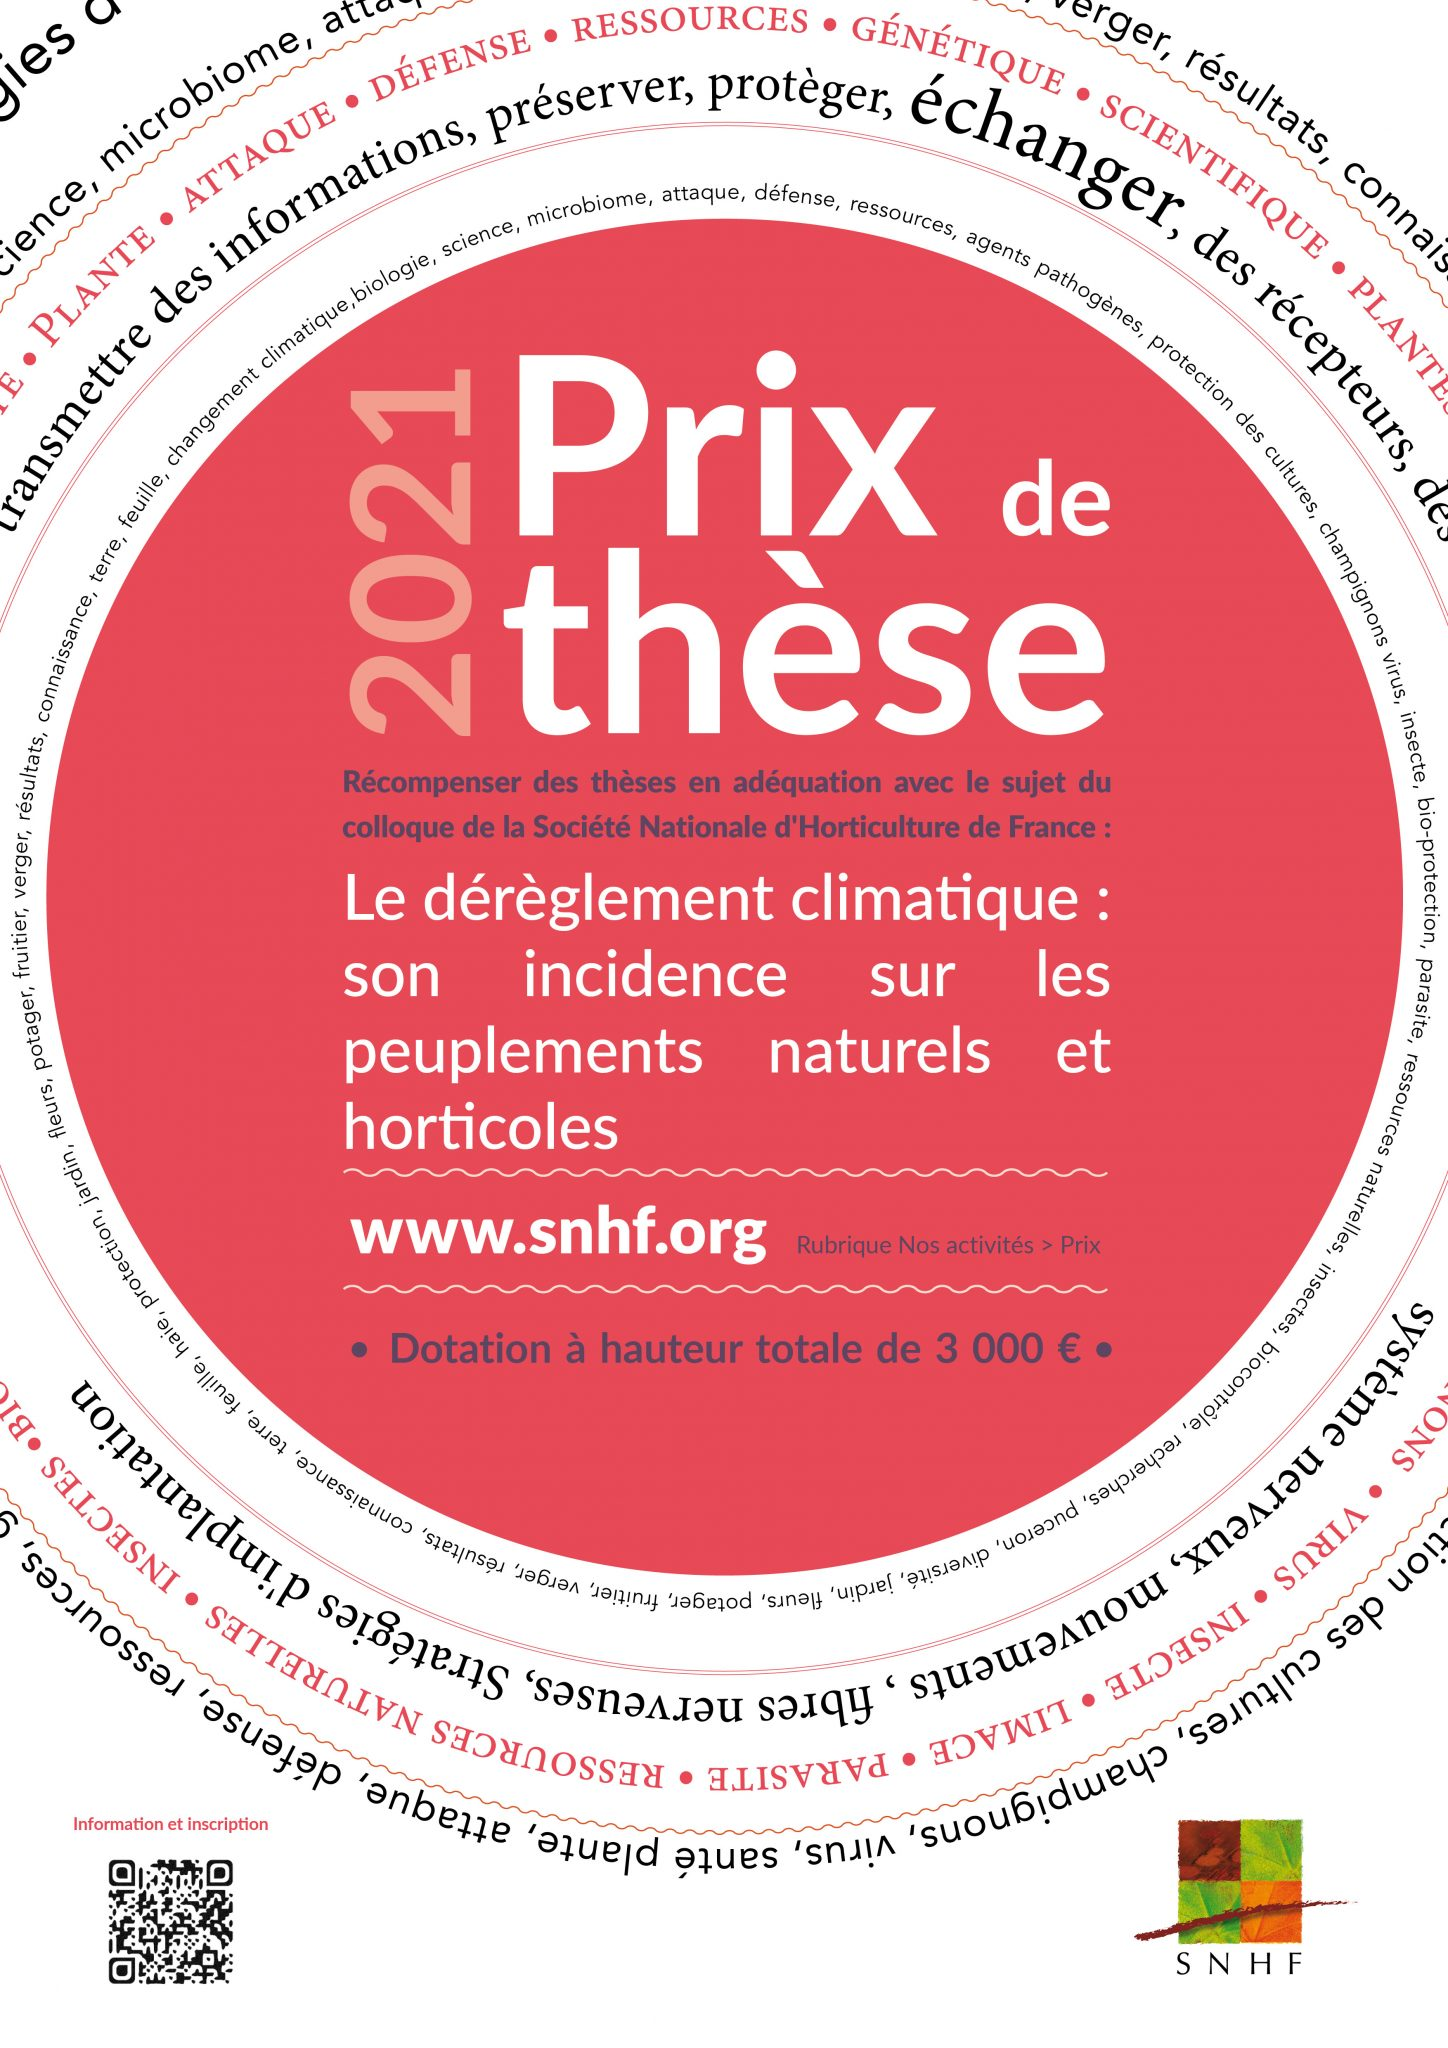 affiche_prix_these+projet_2021